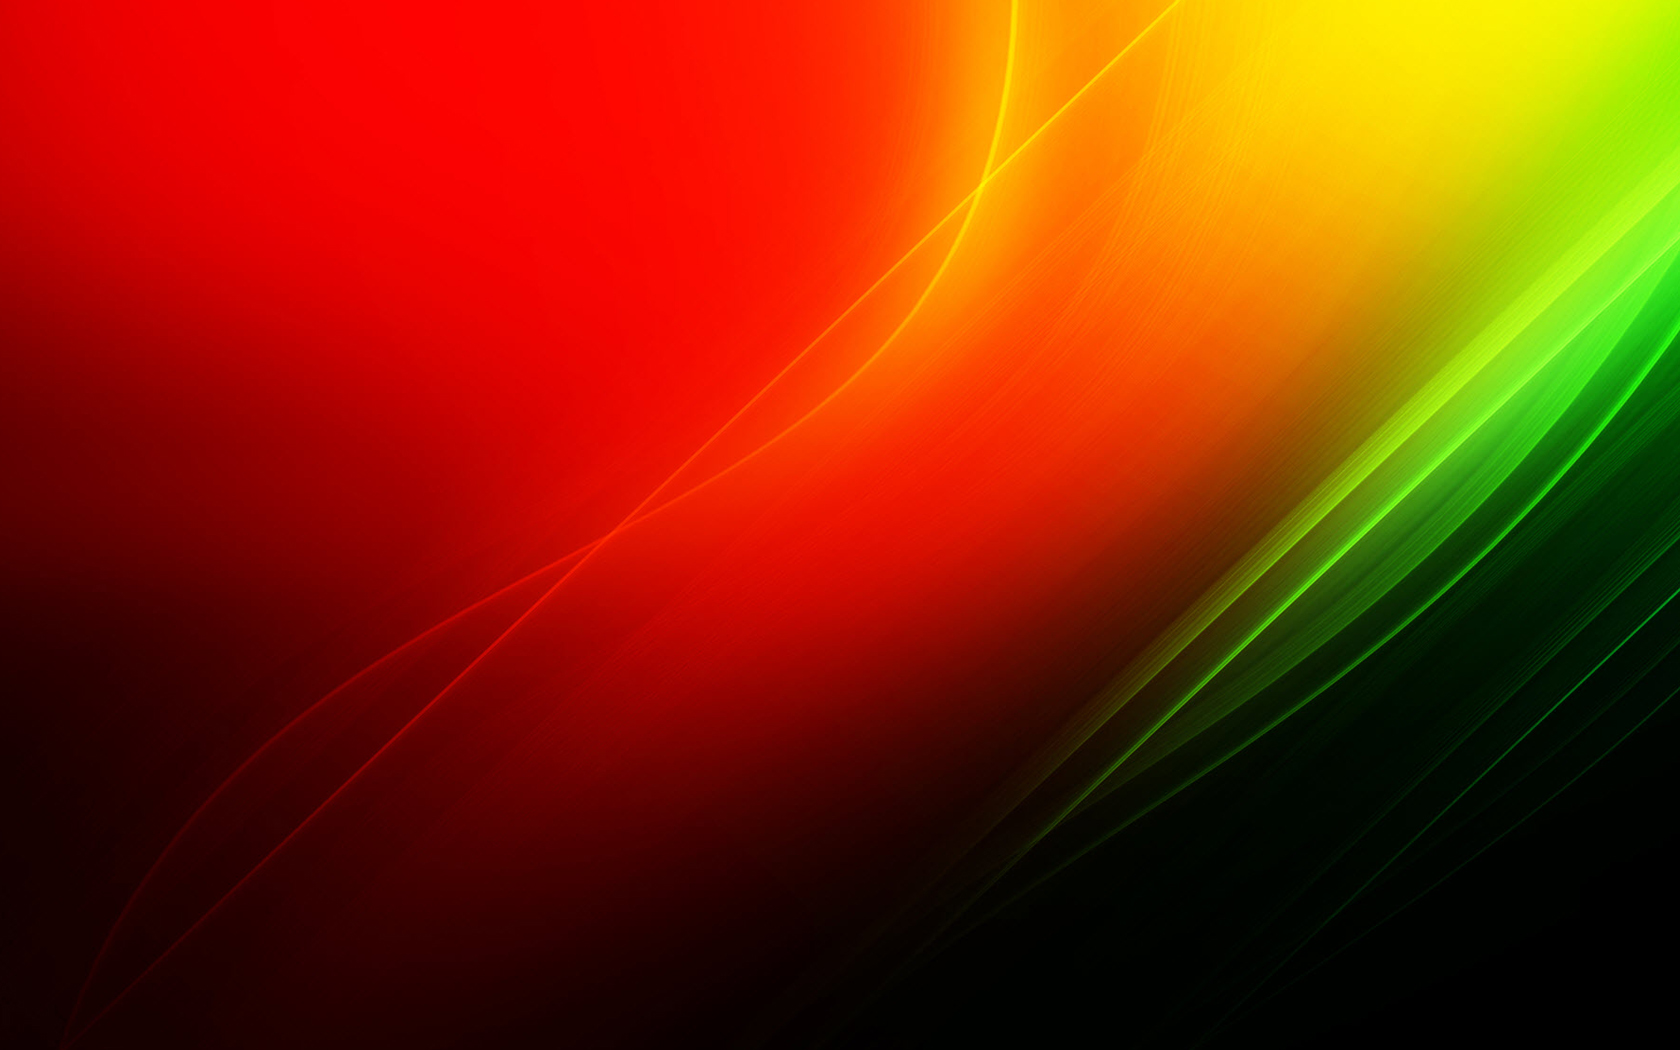 Abstract Ps3 Free Skyrim Wallpaper 1080p Wallpaper